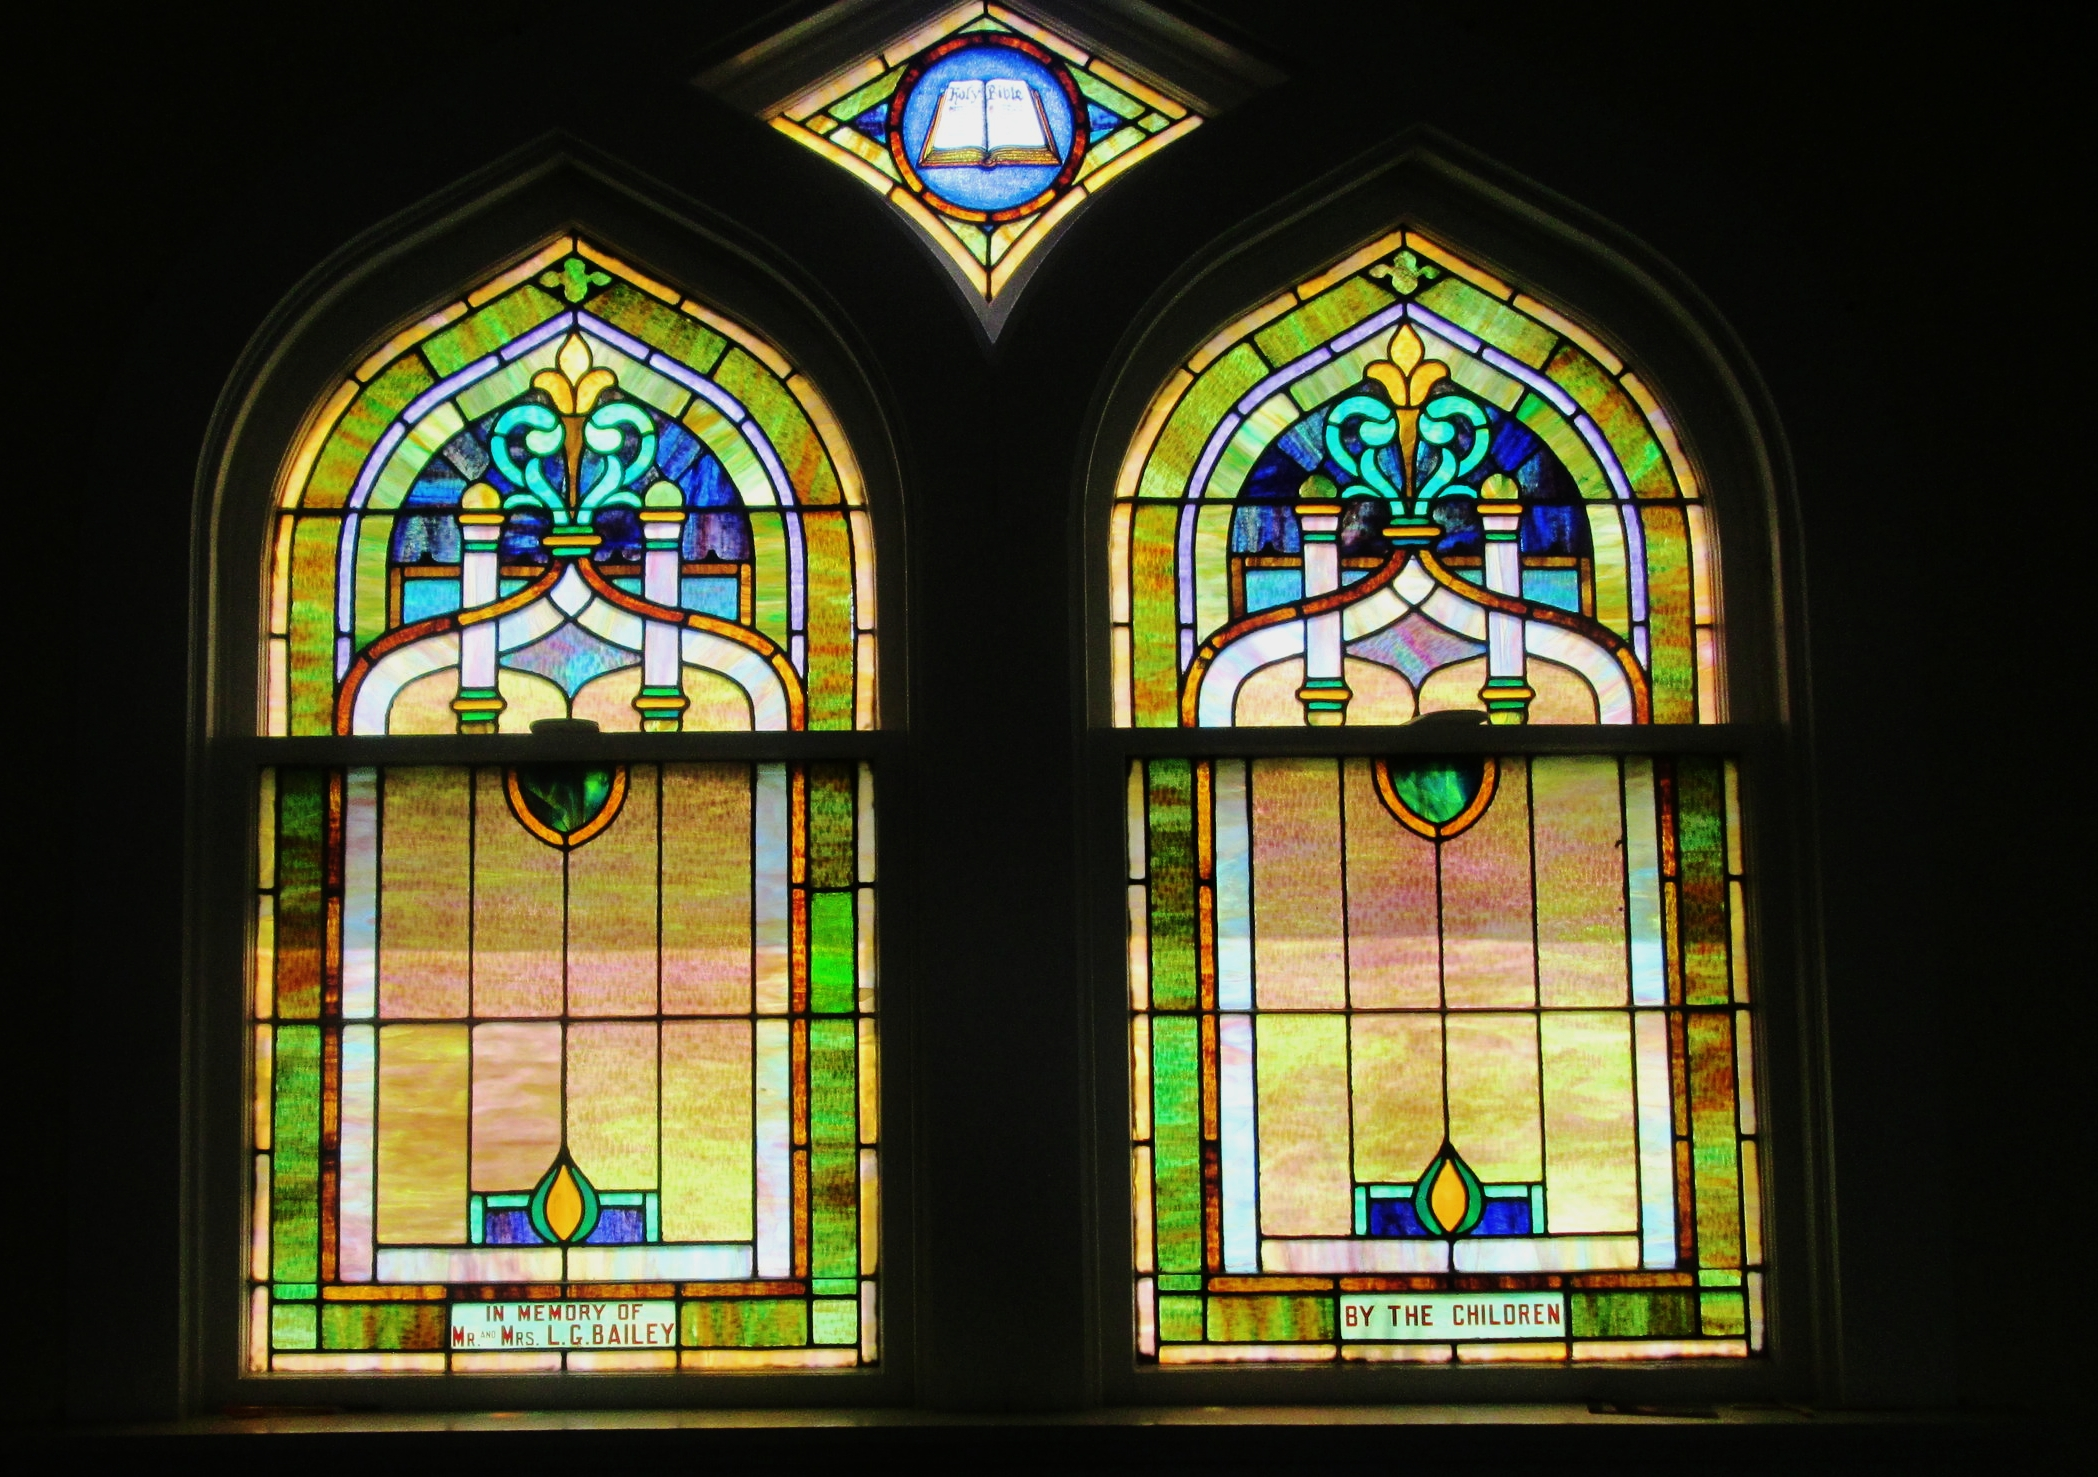 Original Stained Glass Windows from the Sanctuary which will be saved and reused in the new building.